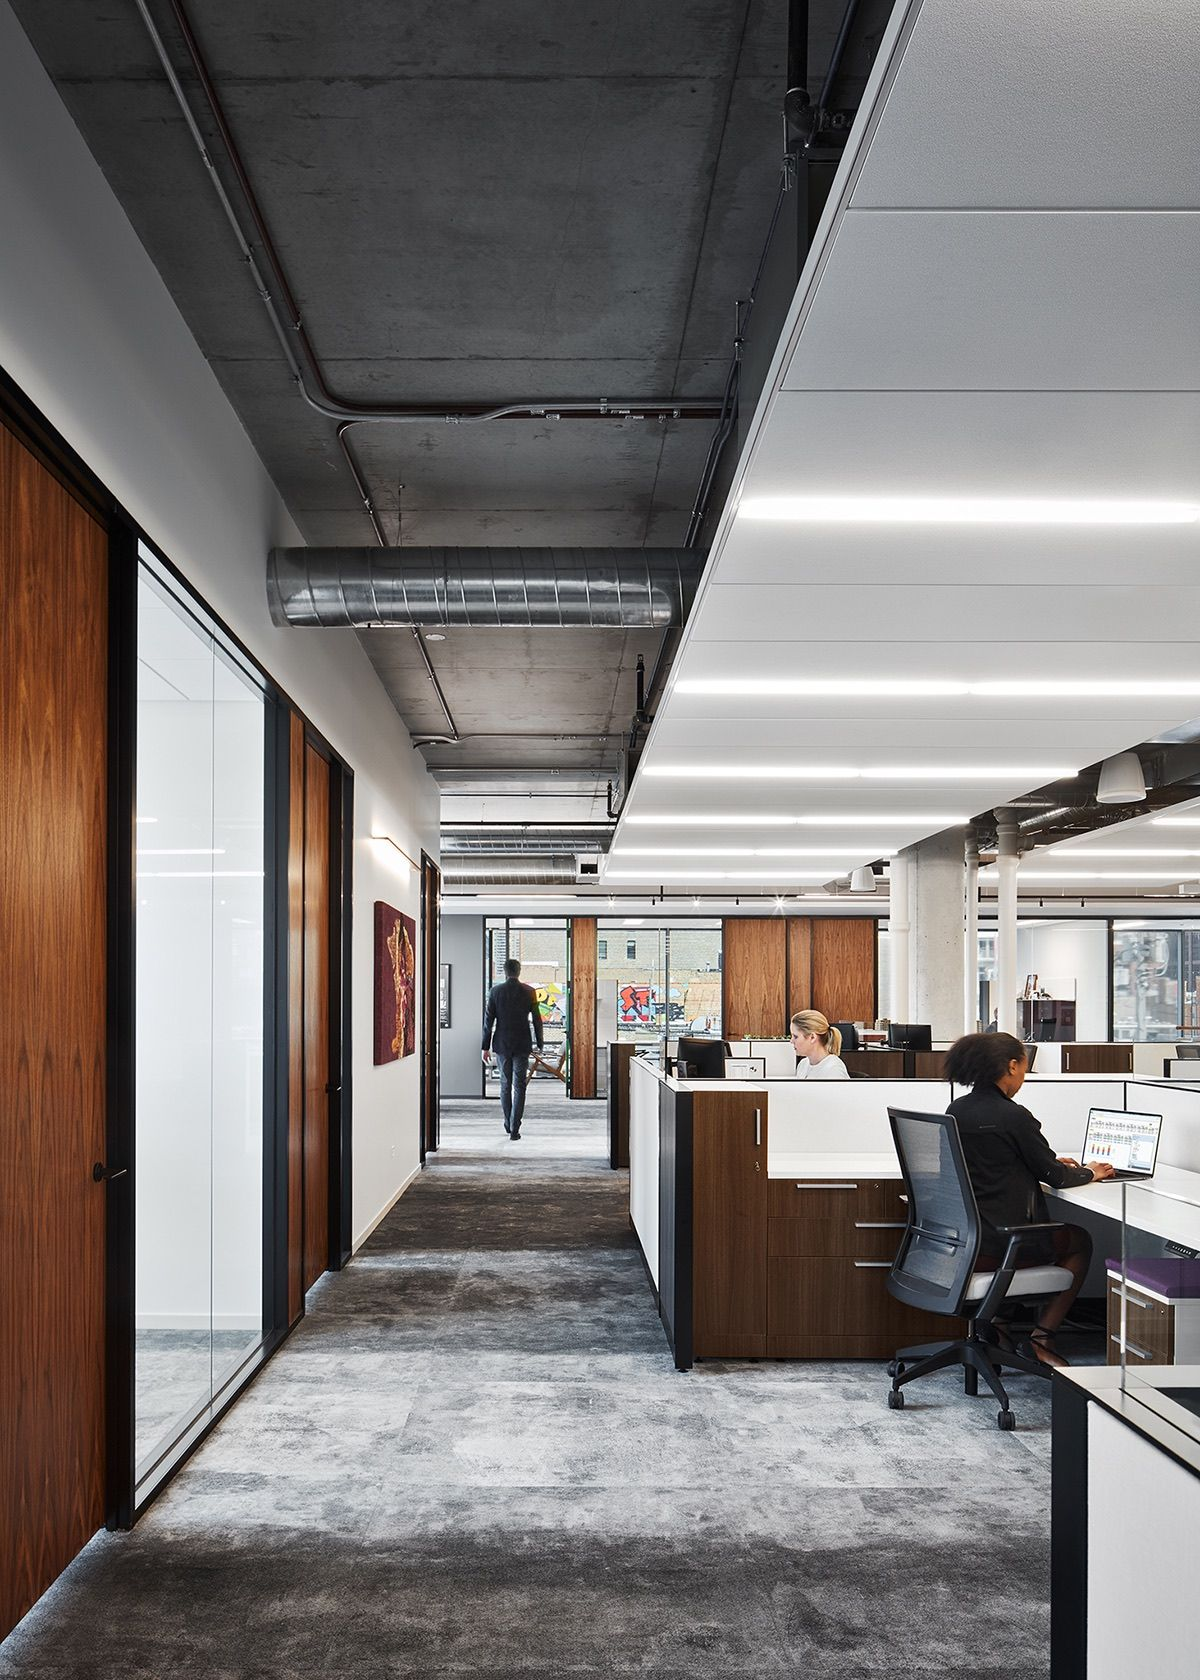 A Look Inside Mccaffery Interests New Chicago Office With Images